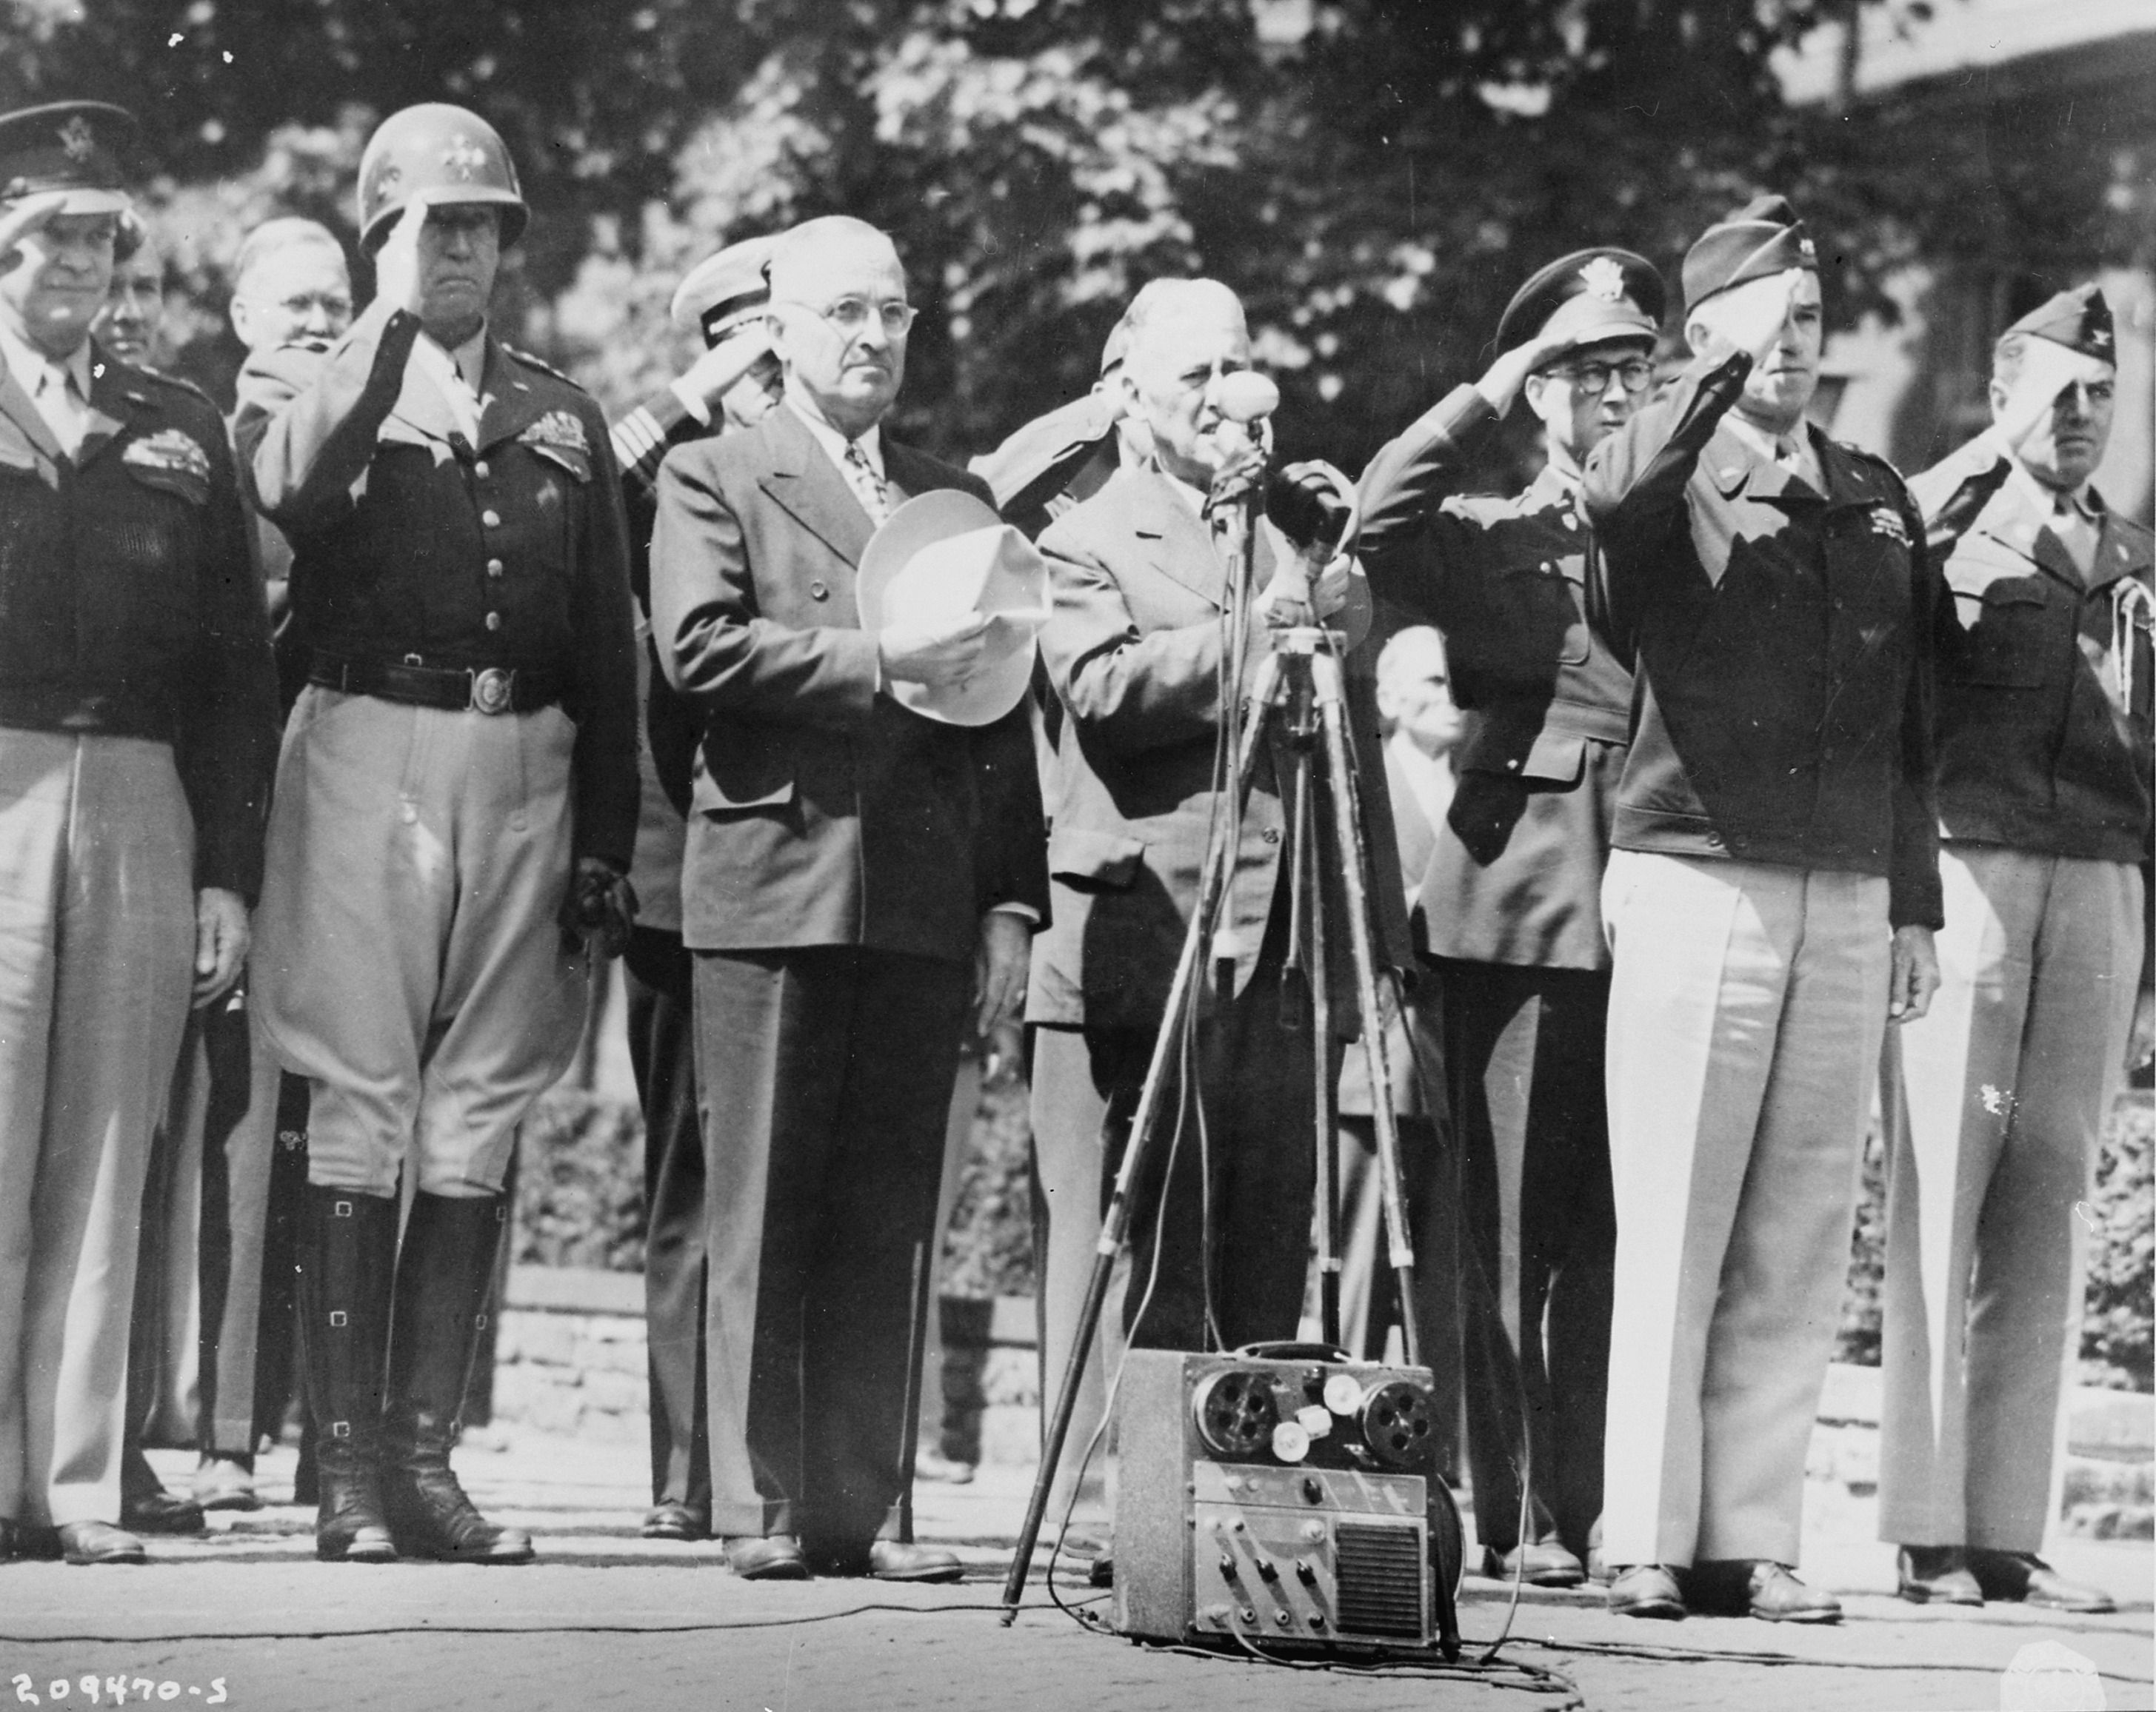 Photo Dwight Eisenhower George Patton Harry Truman Henry Stimson Omar Bradley And Others During The Raising Of A Us Flag Over Berlin Germany 20 Jul 194 Harry Truman George Patton Dwight Eisenhower